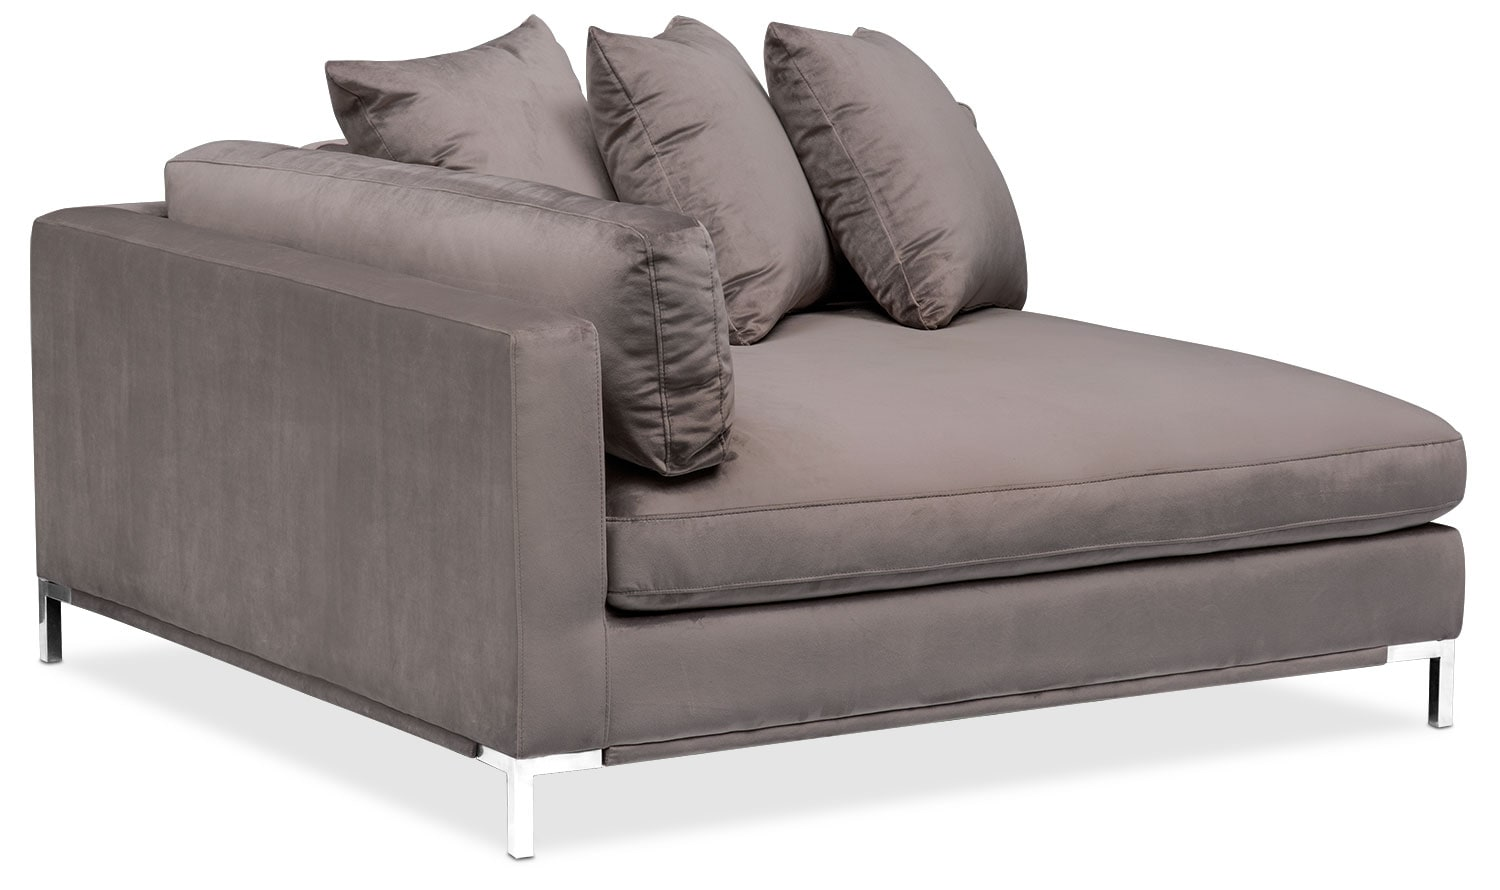 Moda 3 piece sectional with left facing chaise oyster for 3 piece sectional sofa with chaise